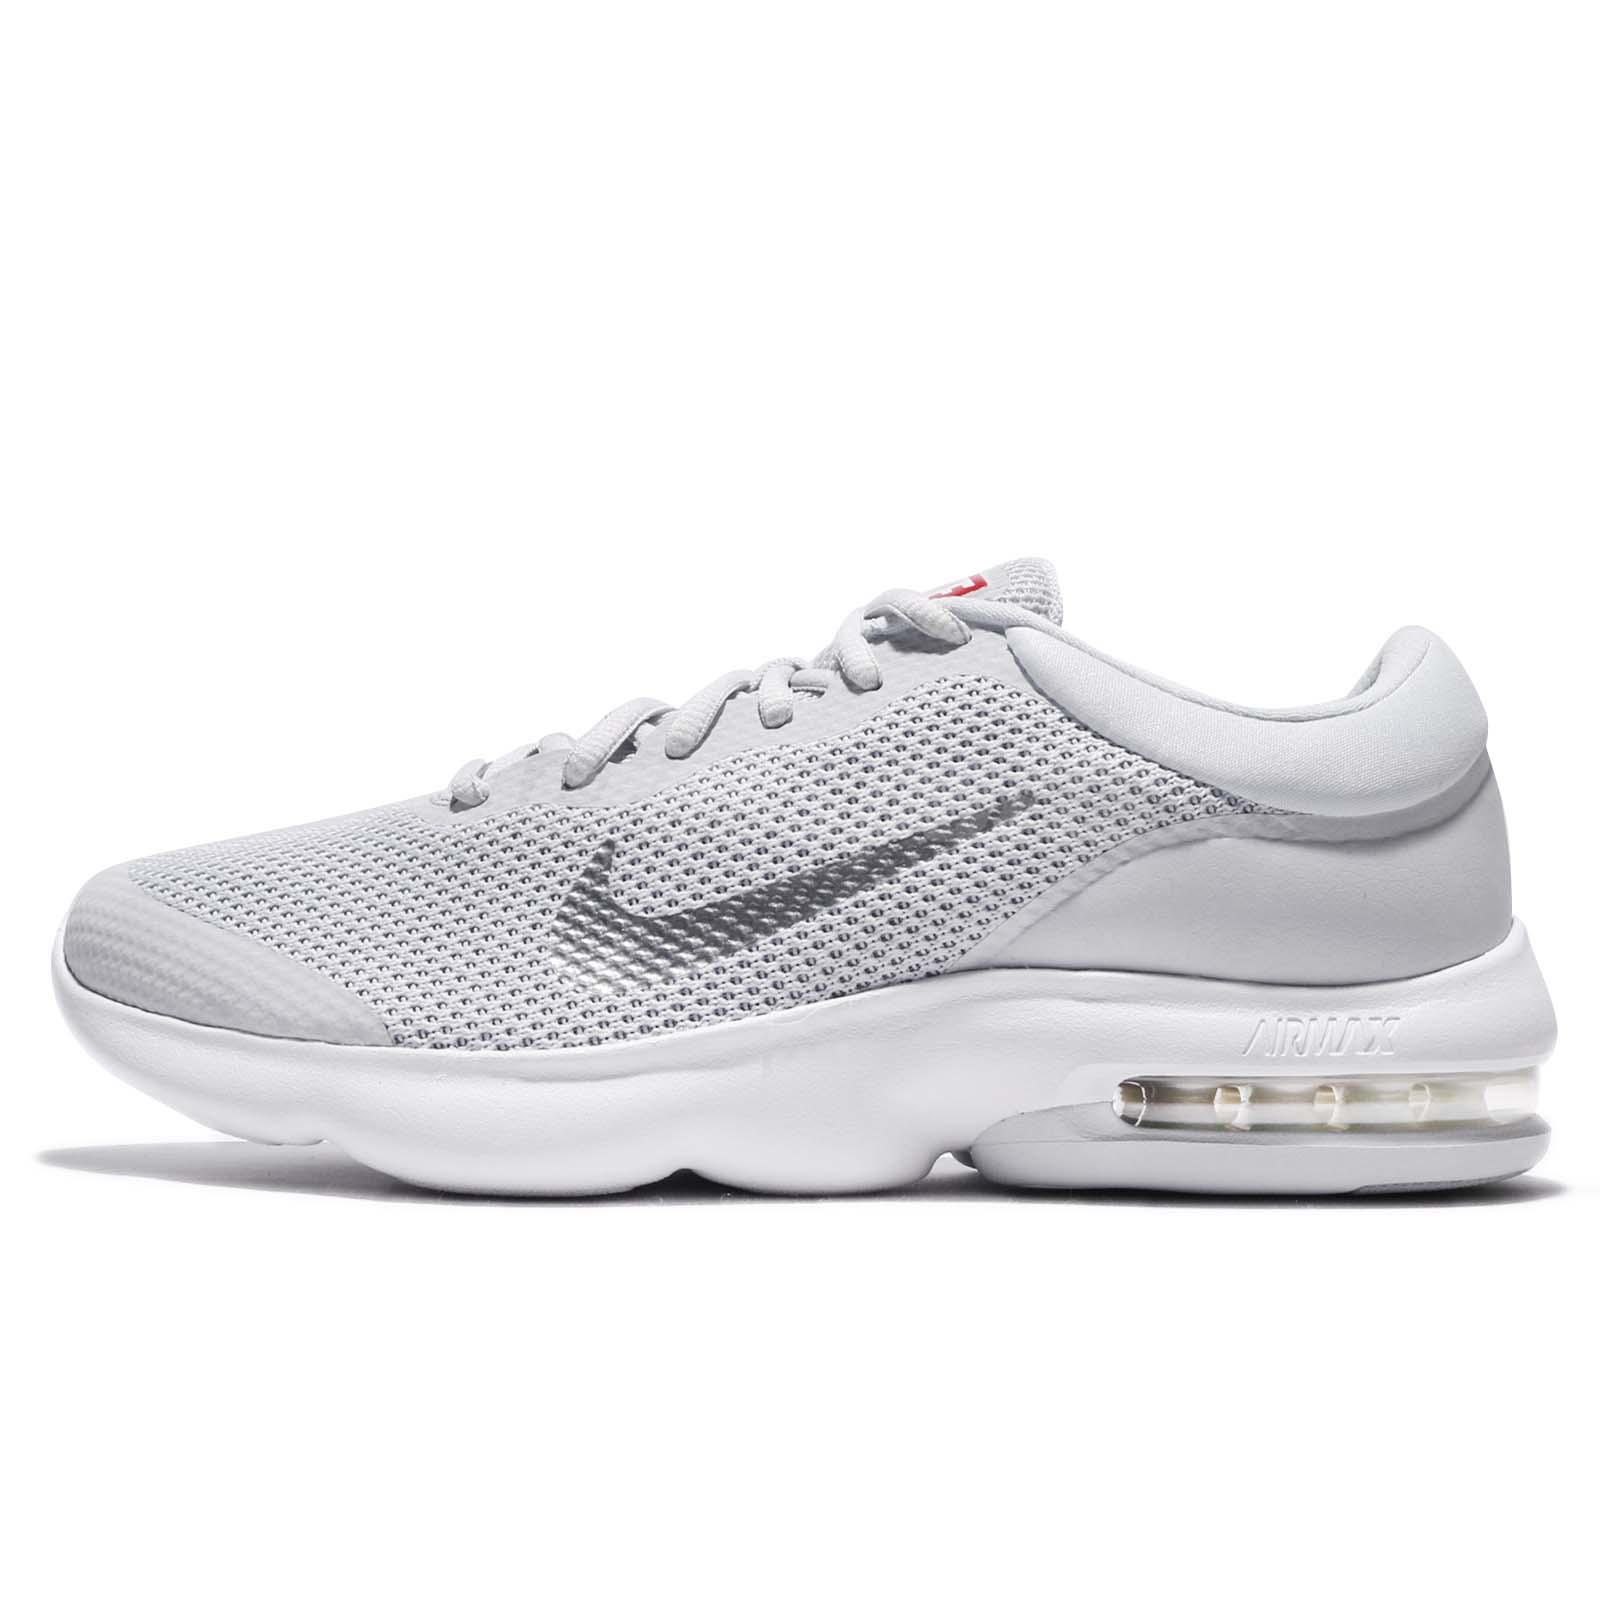 meet 756b5 74872 ... Nike Air Max Advantage Pure Platinum White Men Running Shoes Trainers  908981-006 ...